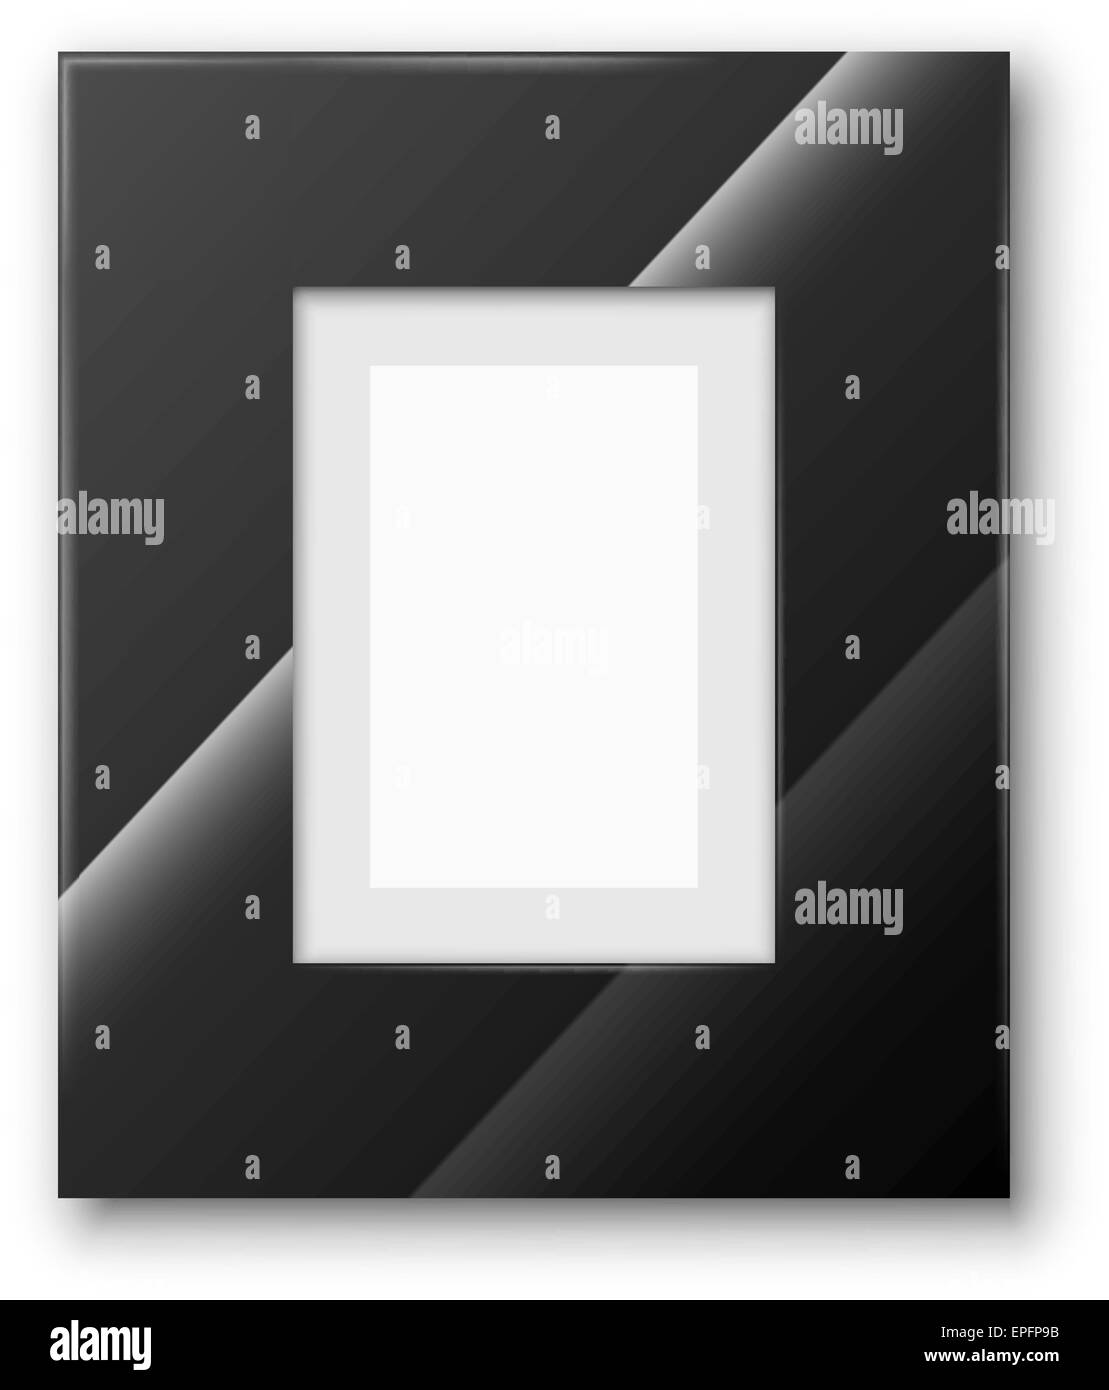 Frame black - Stock Image